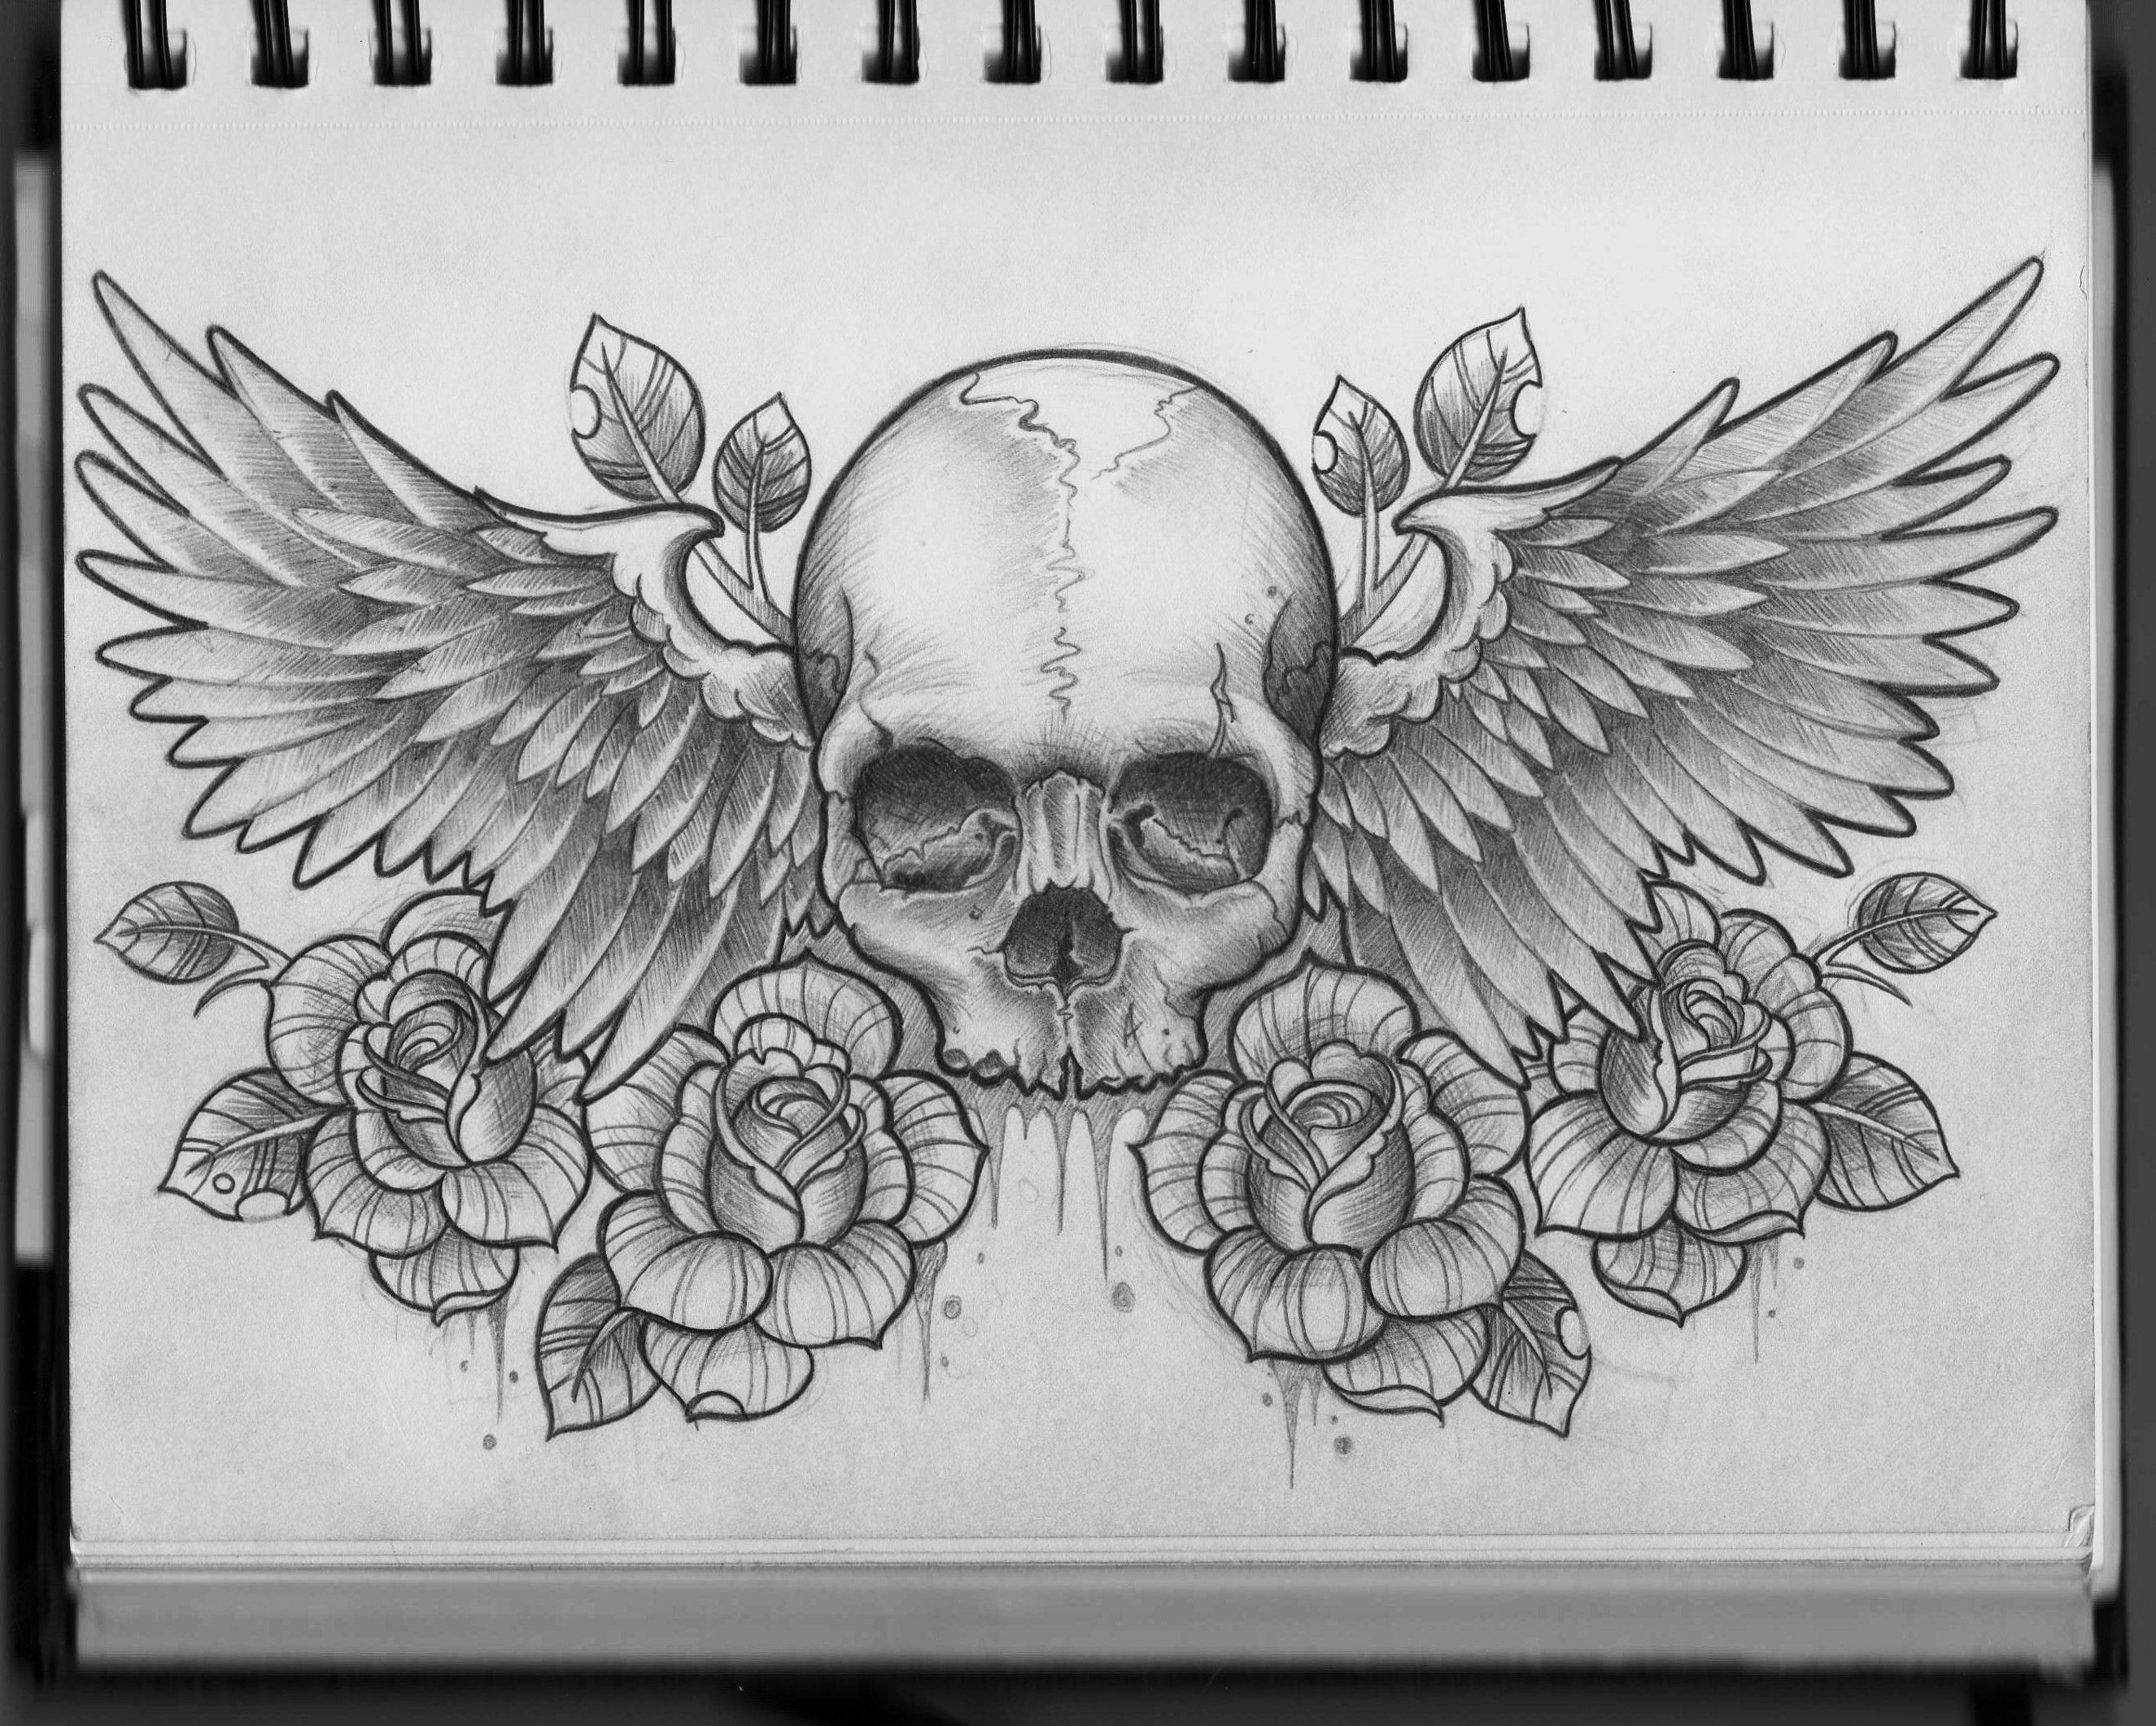 Skull And Wings Chest Design